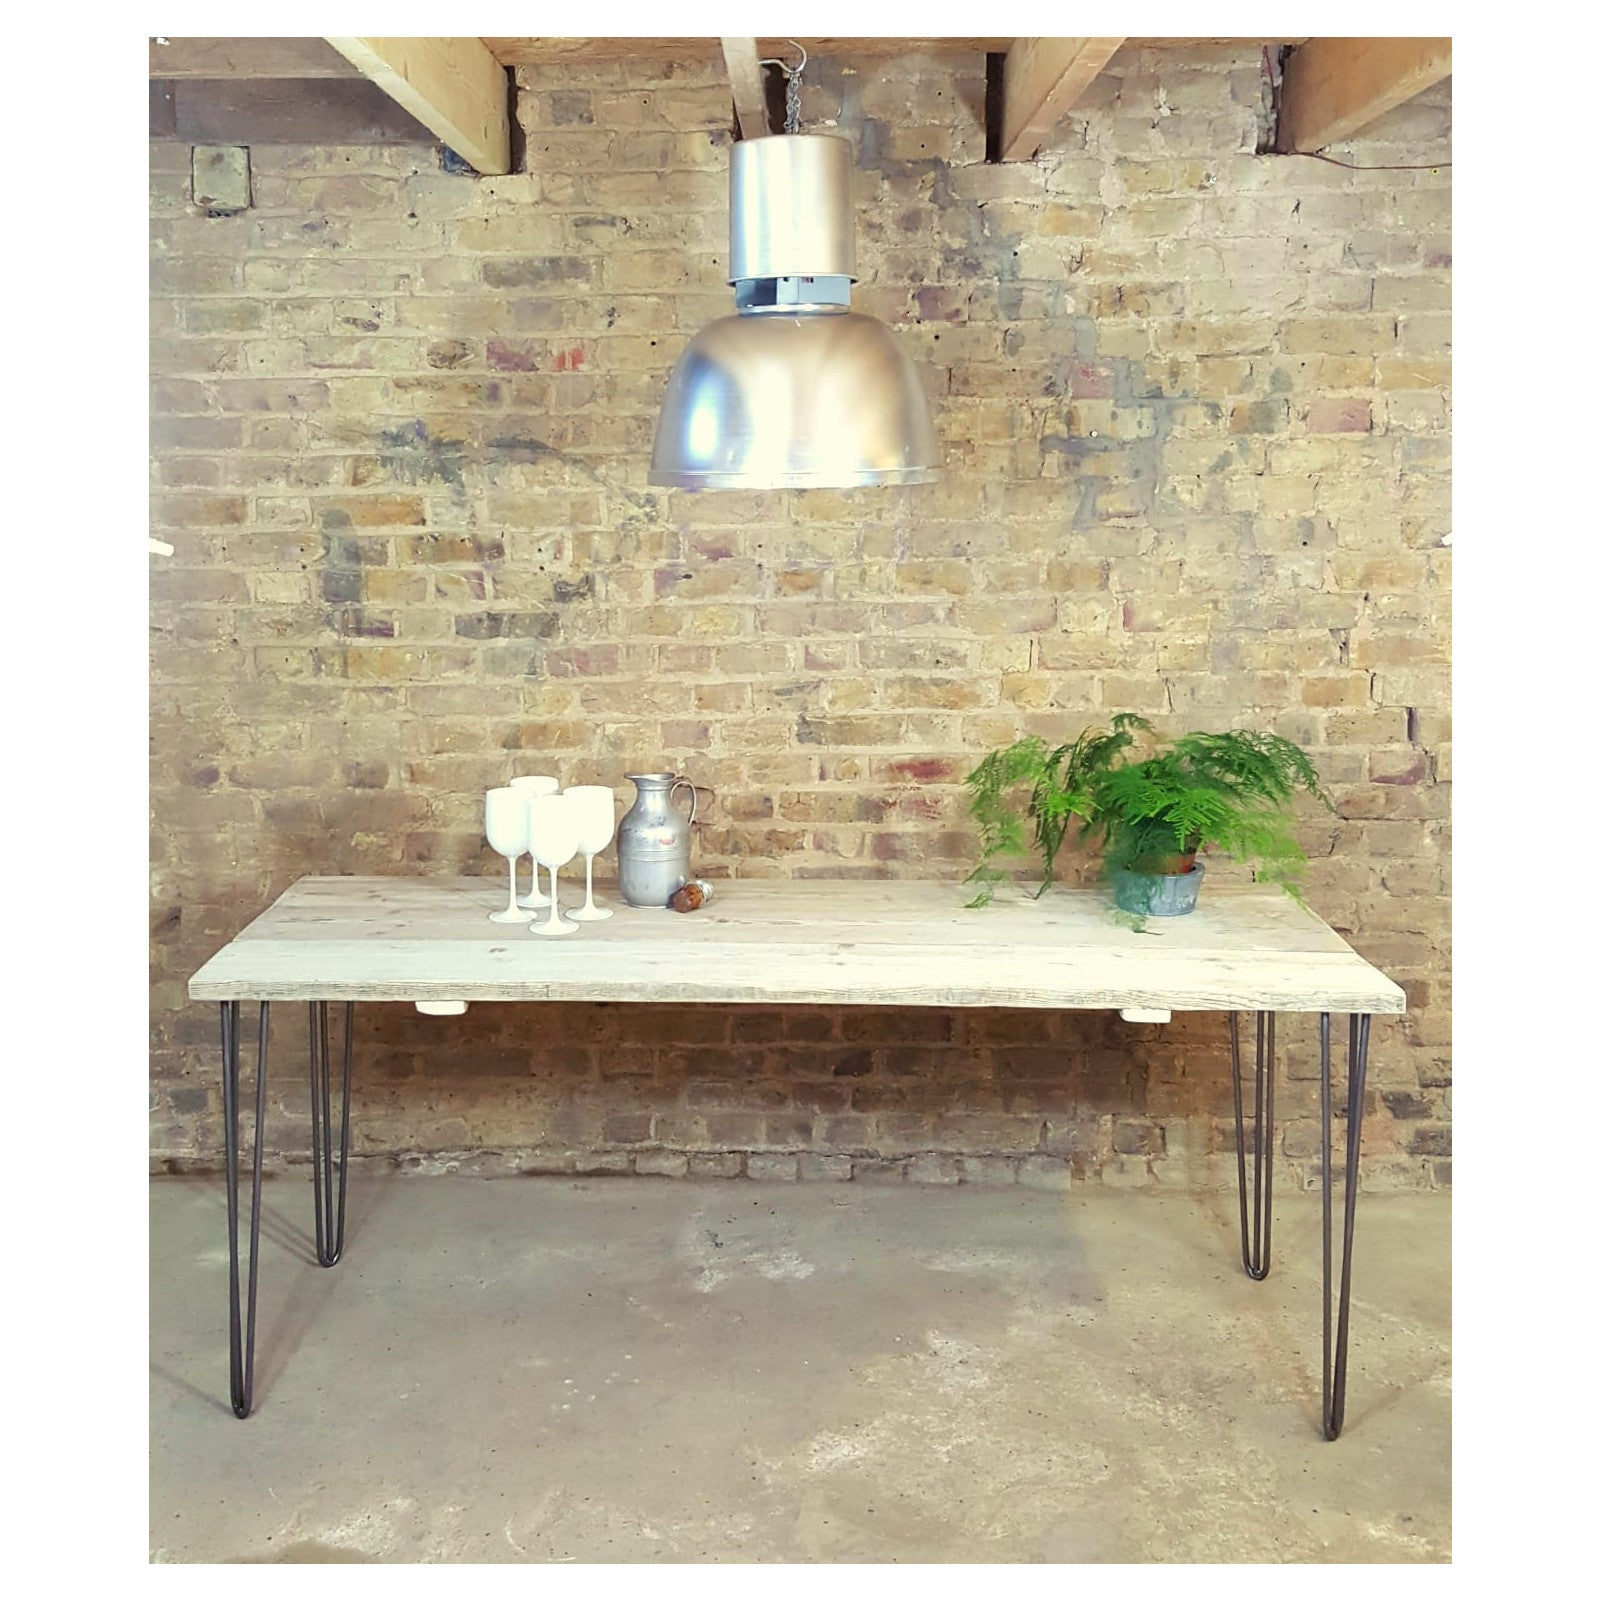 Reclaimed pine Dining Table with metal hairpin legs - Junk Art Design @junkartdesign www.junkartdesign.co.uk